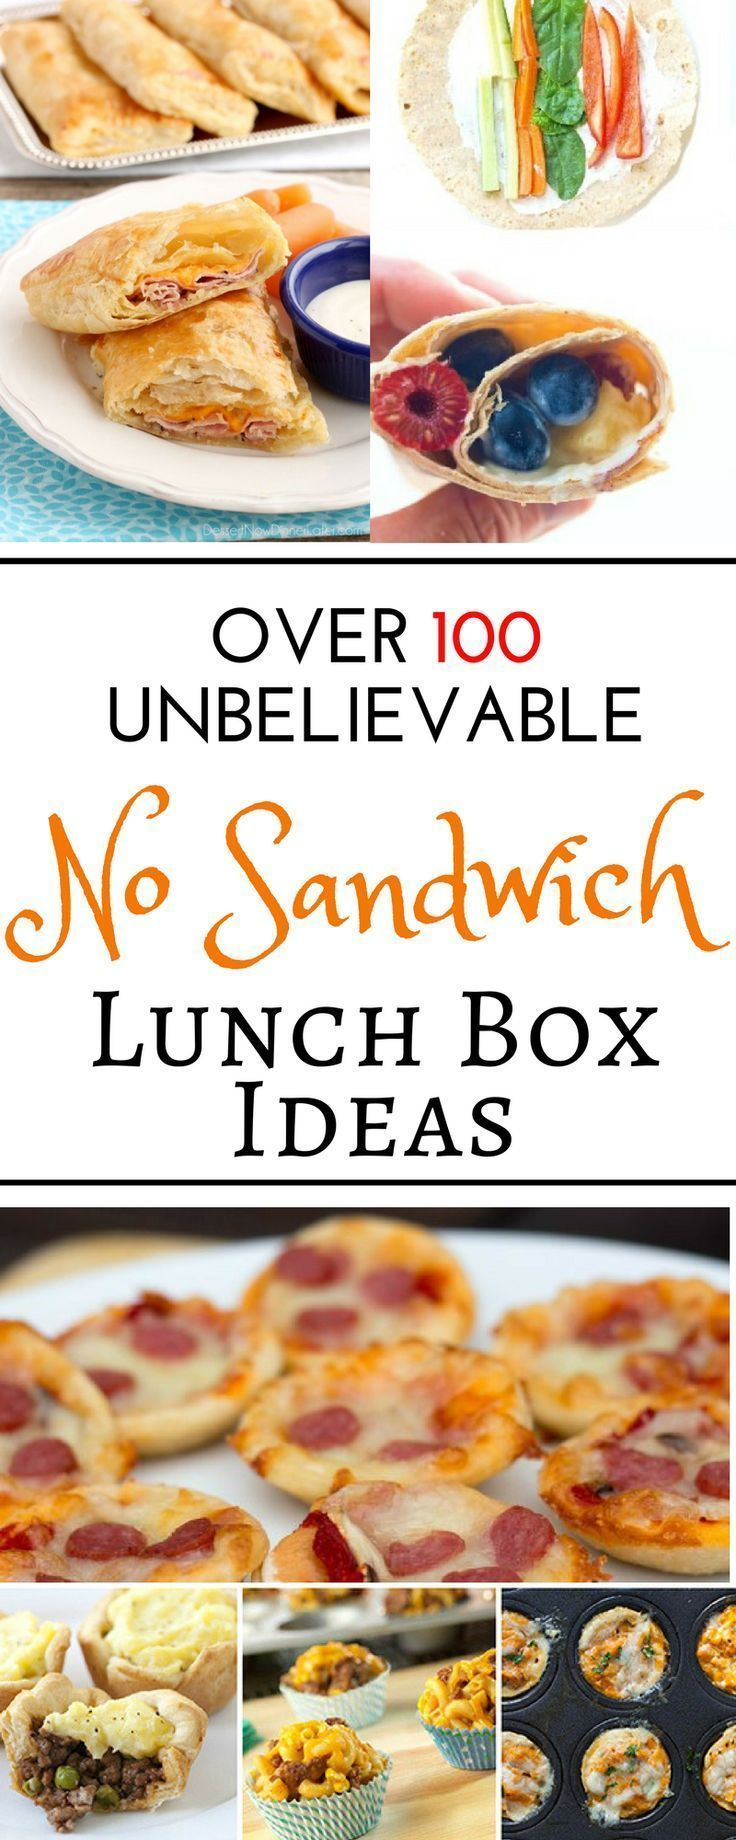 Pin by Cheryl Groustra on For the Home - Kitchen   Pinterest   Picky ...